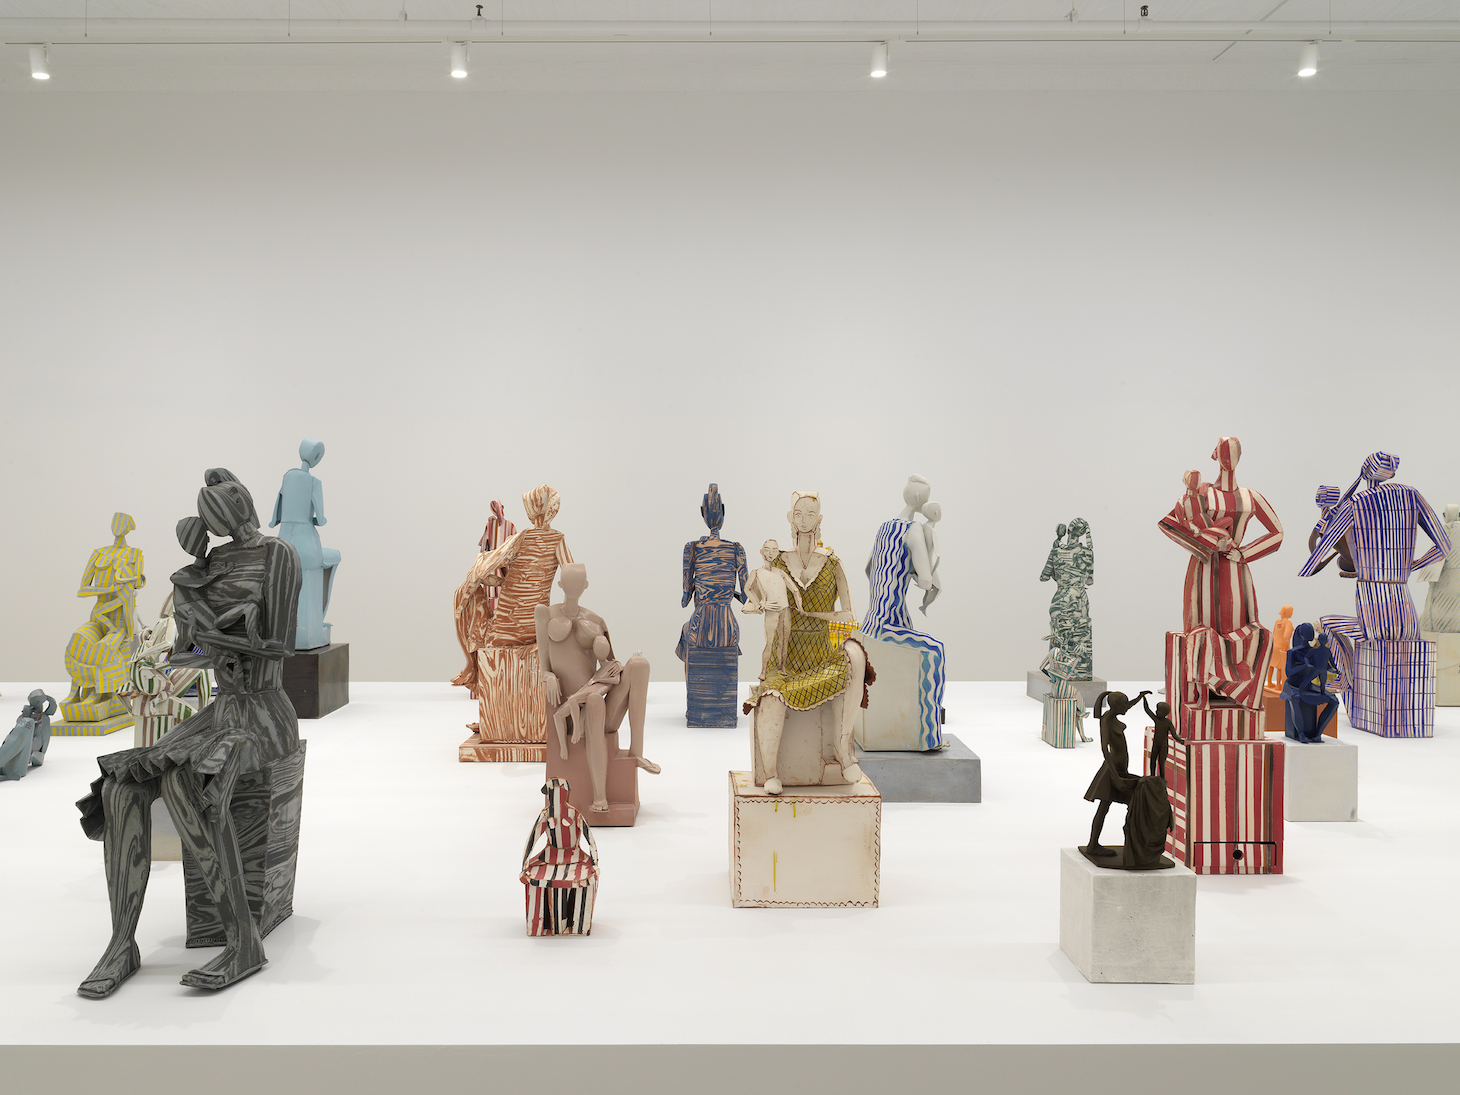 A photograph of approximately twenty abstract Madonna statues on a white table in a sparse gallery. Most are accompanied by a female infant or child. Their bodies are schematic and cubistic. Some figures are nude, some are clothed, some are monochromatic, and some are striped. The statues are all of varying sizes, ranging from under eight inches to three-feet tall.